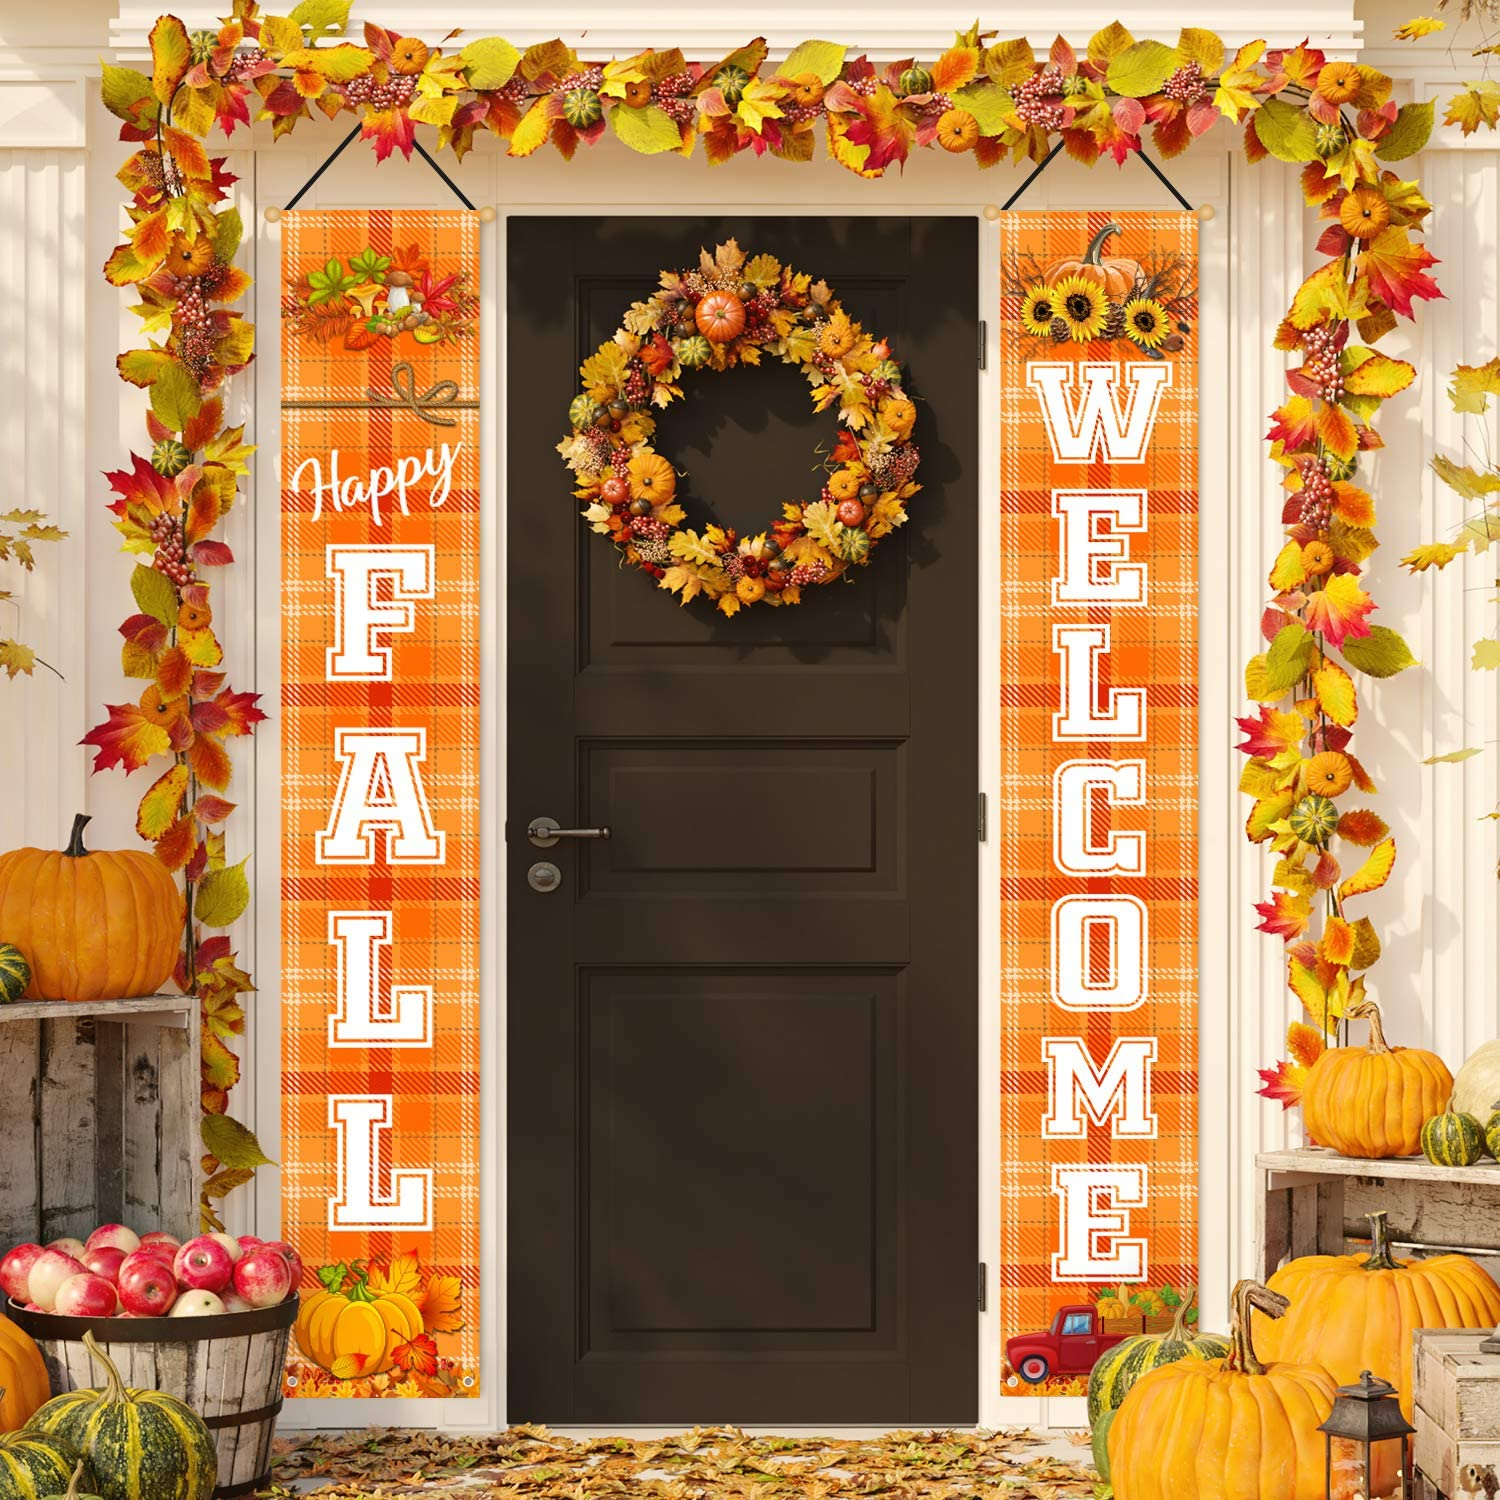 Whaline Fall Decoration Welcome Happy Fall Porch Sign Orange Plaid Sunflower Pumpkin Door Sign Rustic Autumn Hanging Banner for Indoor Outdoor Home Farmhouse Yard Harvest Thanksgiving Party Decor